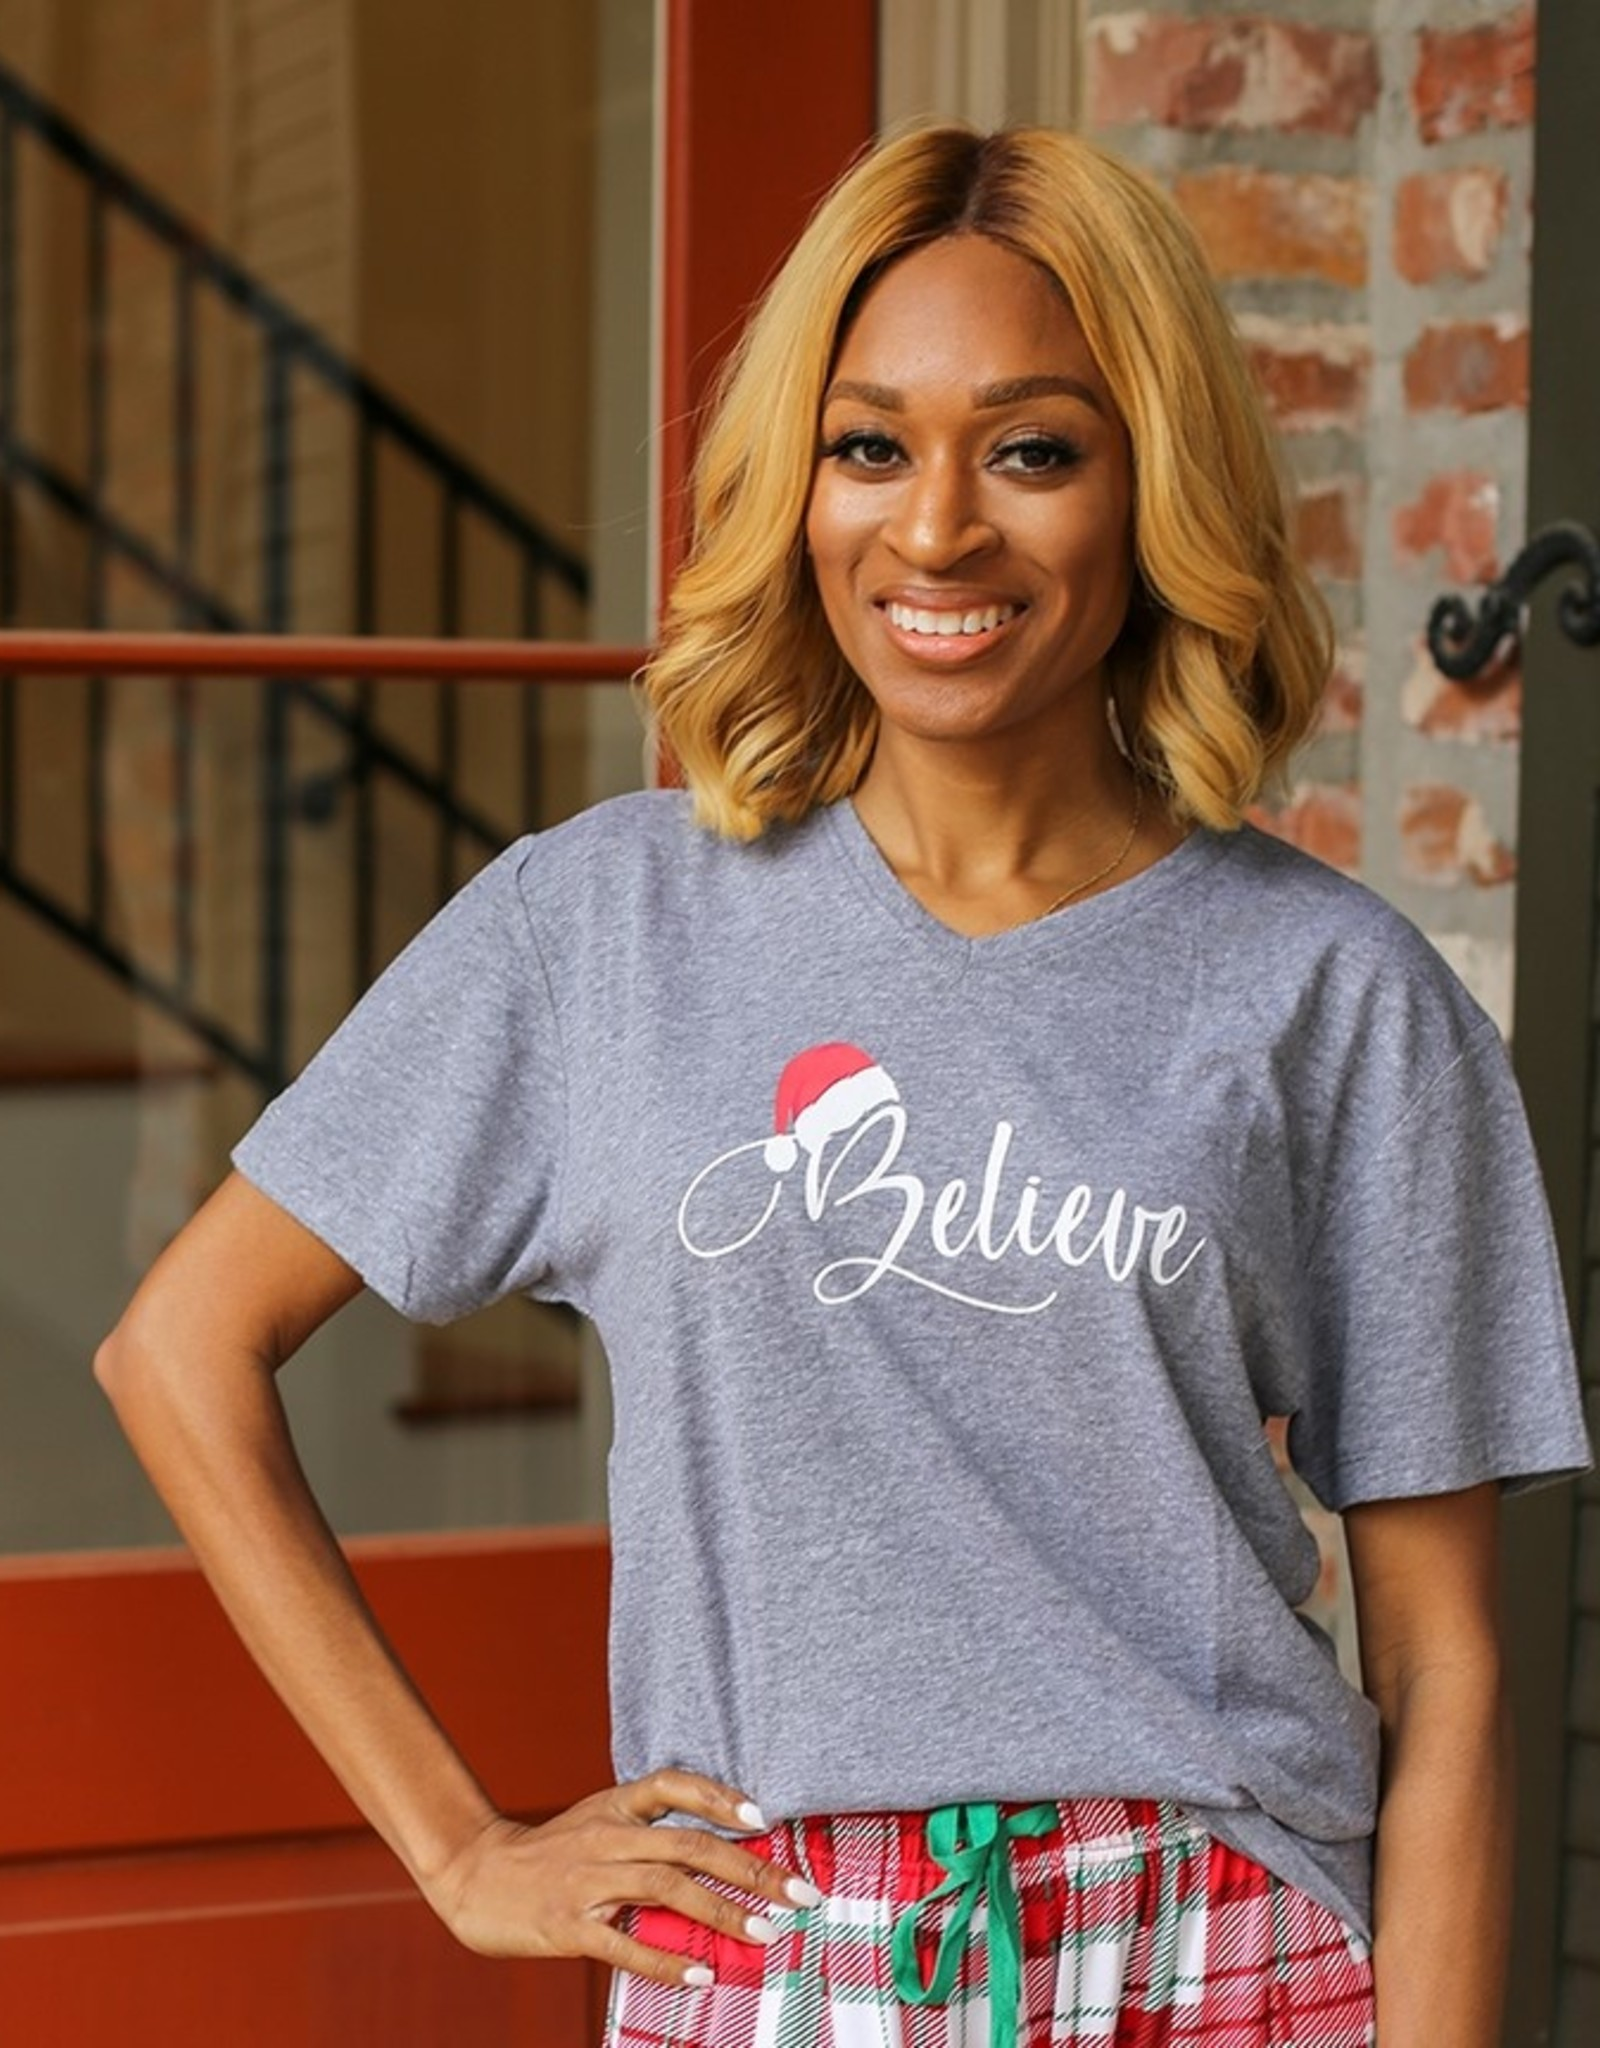 Believe V Neck Tee